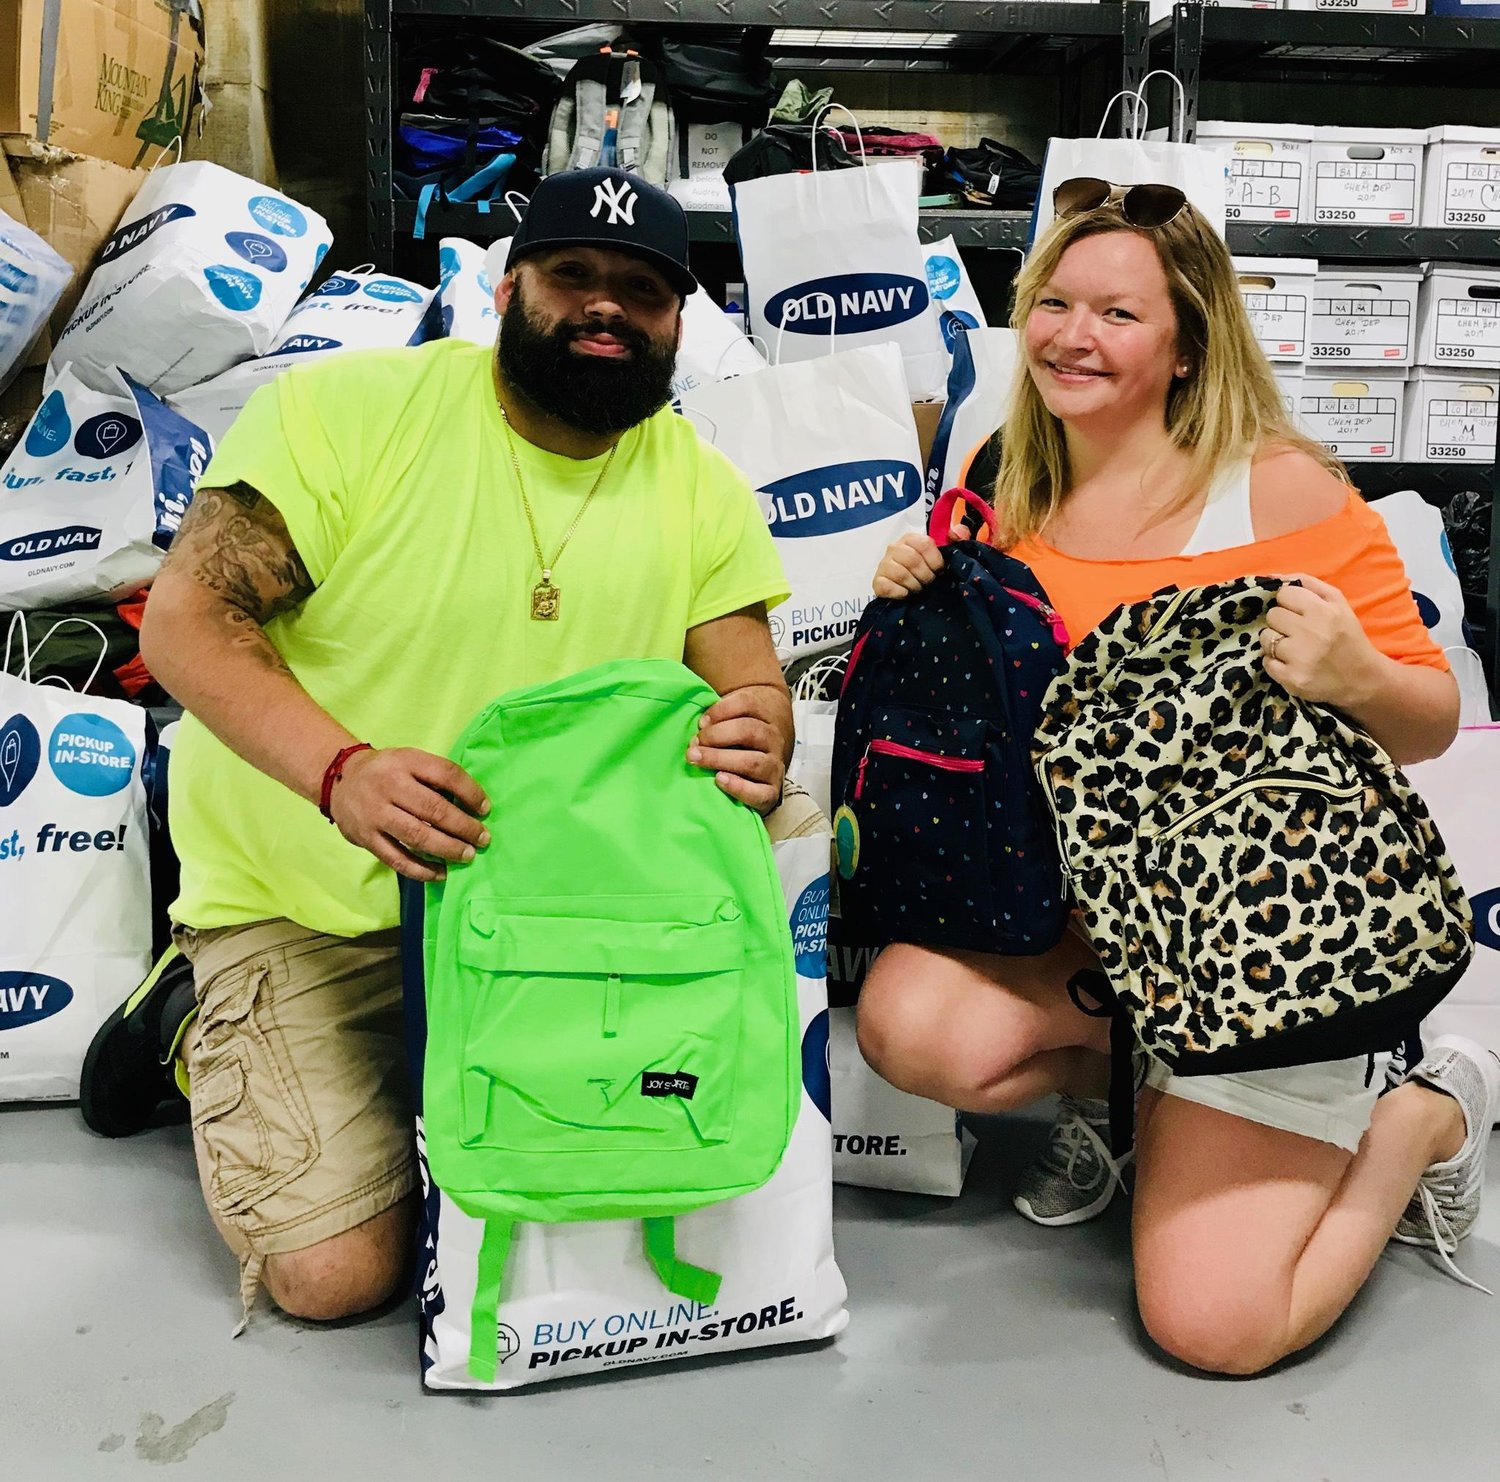 Old Navy donated more than backpack filled with school supplies to the New Horizon Counseling Center. Joseph Delgado, manager at College Point Old Navy and Stacey Engebrethson, district manager in Training of Old Navy in Nassau County.